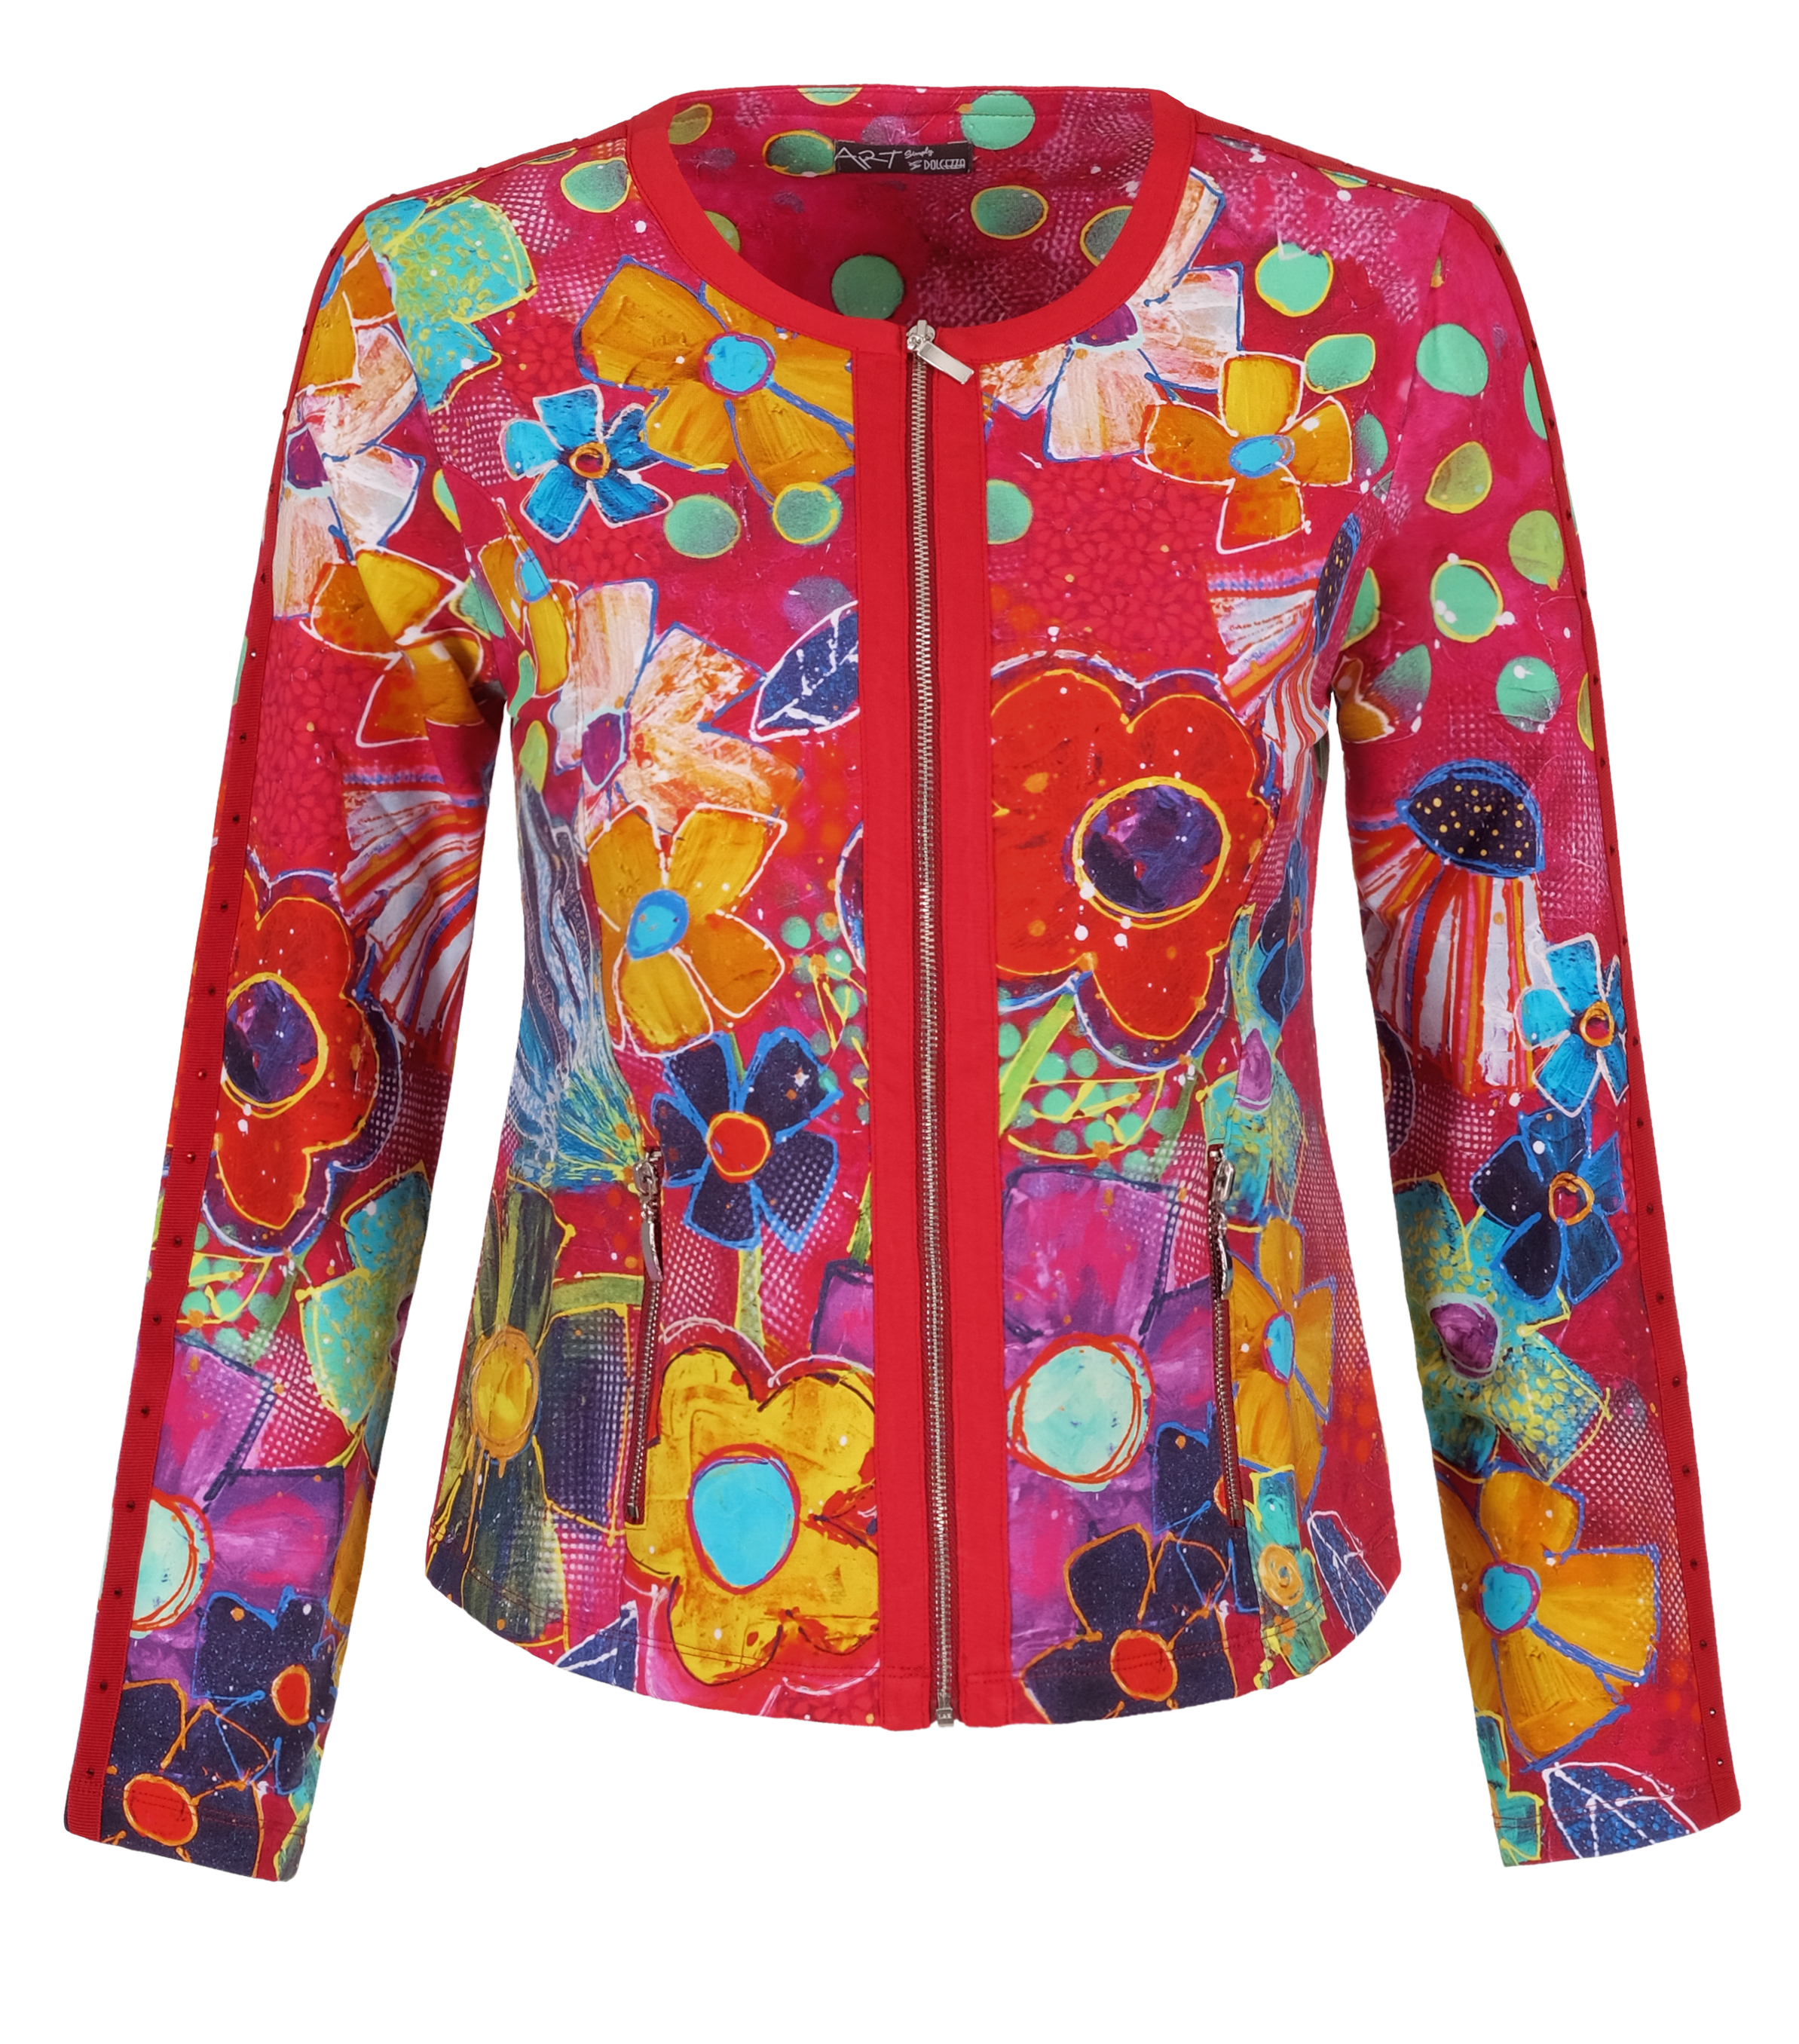 Simply Art: Fiesta Flowers Soft Denim Zip Up Abstract Art Jacket SOLD OUT